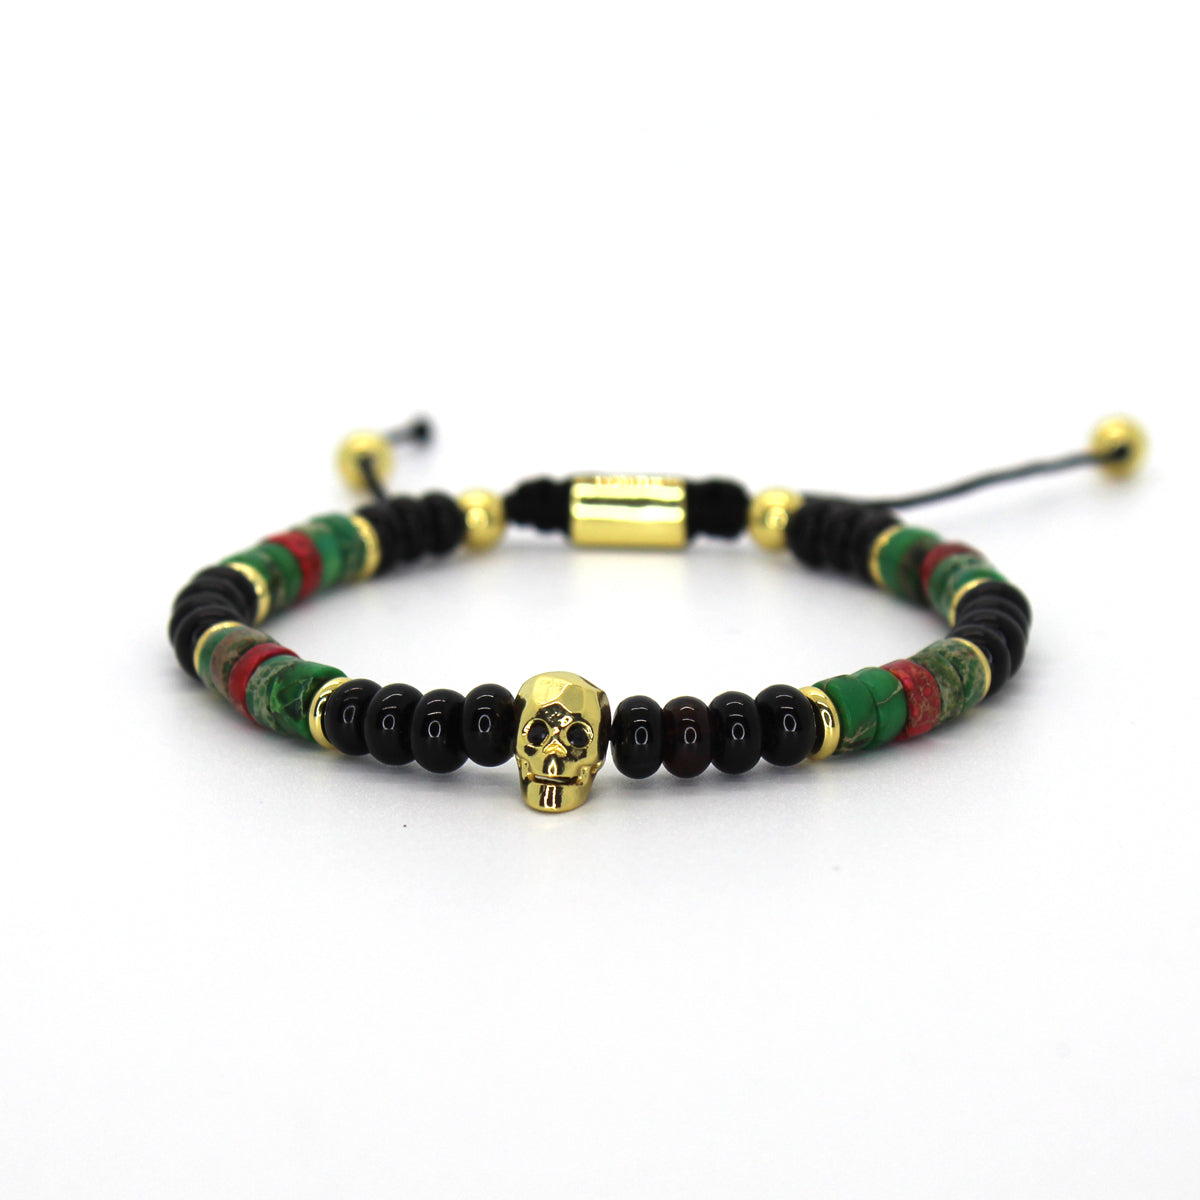 Vulcan Adjustable Bracelet - Ouro Goods